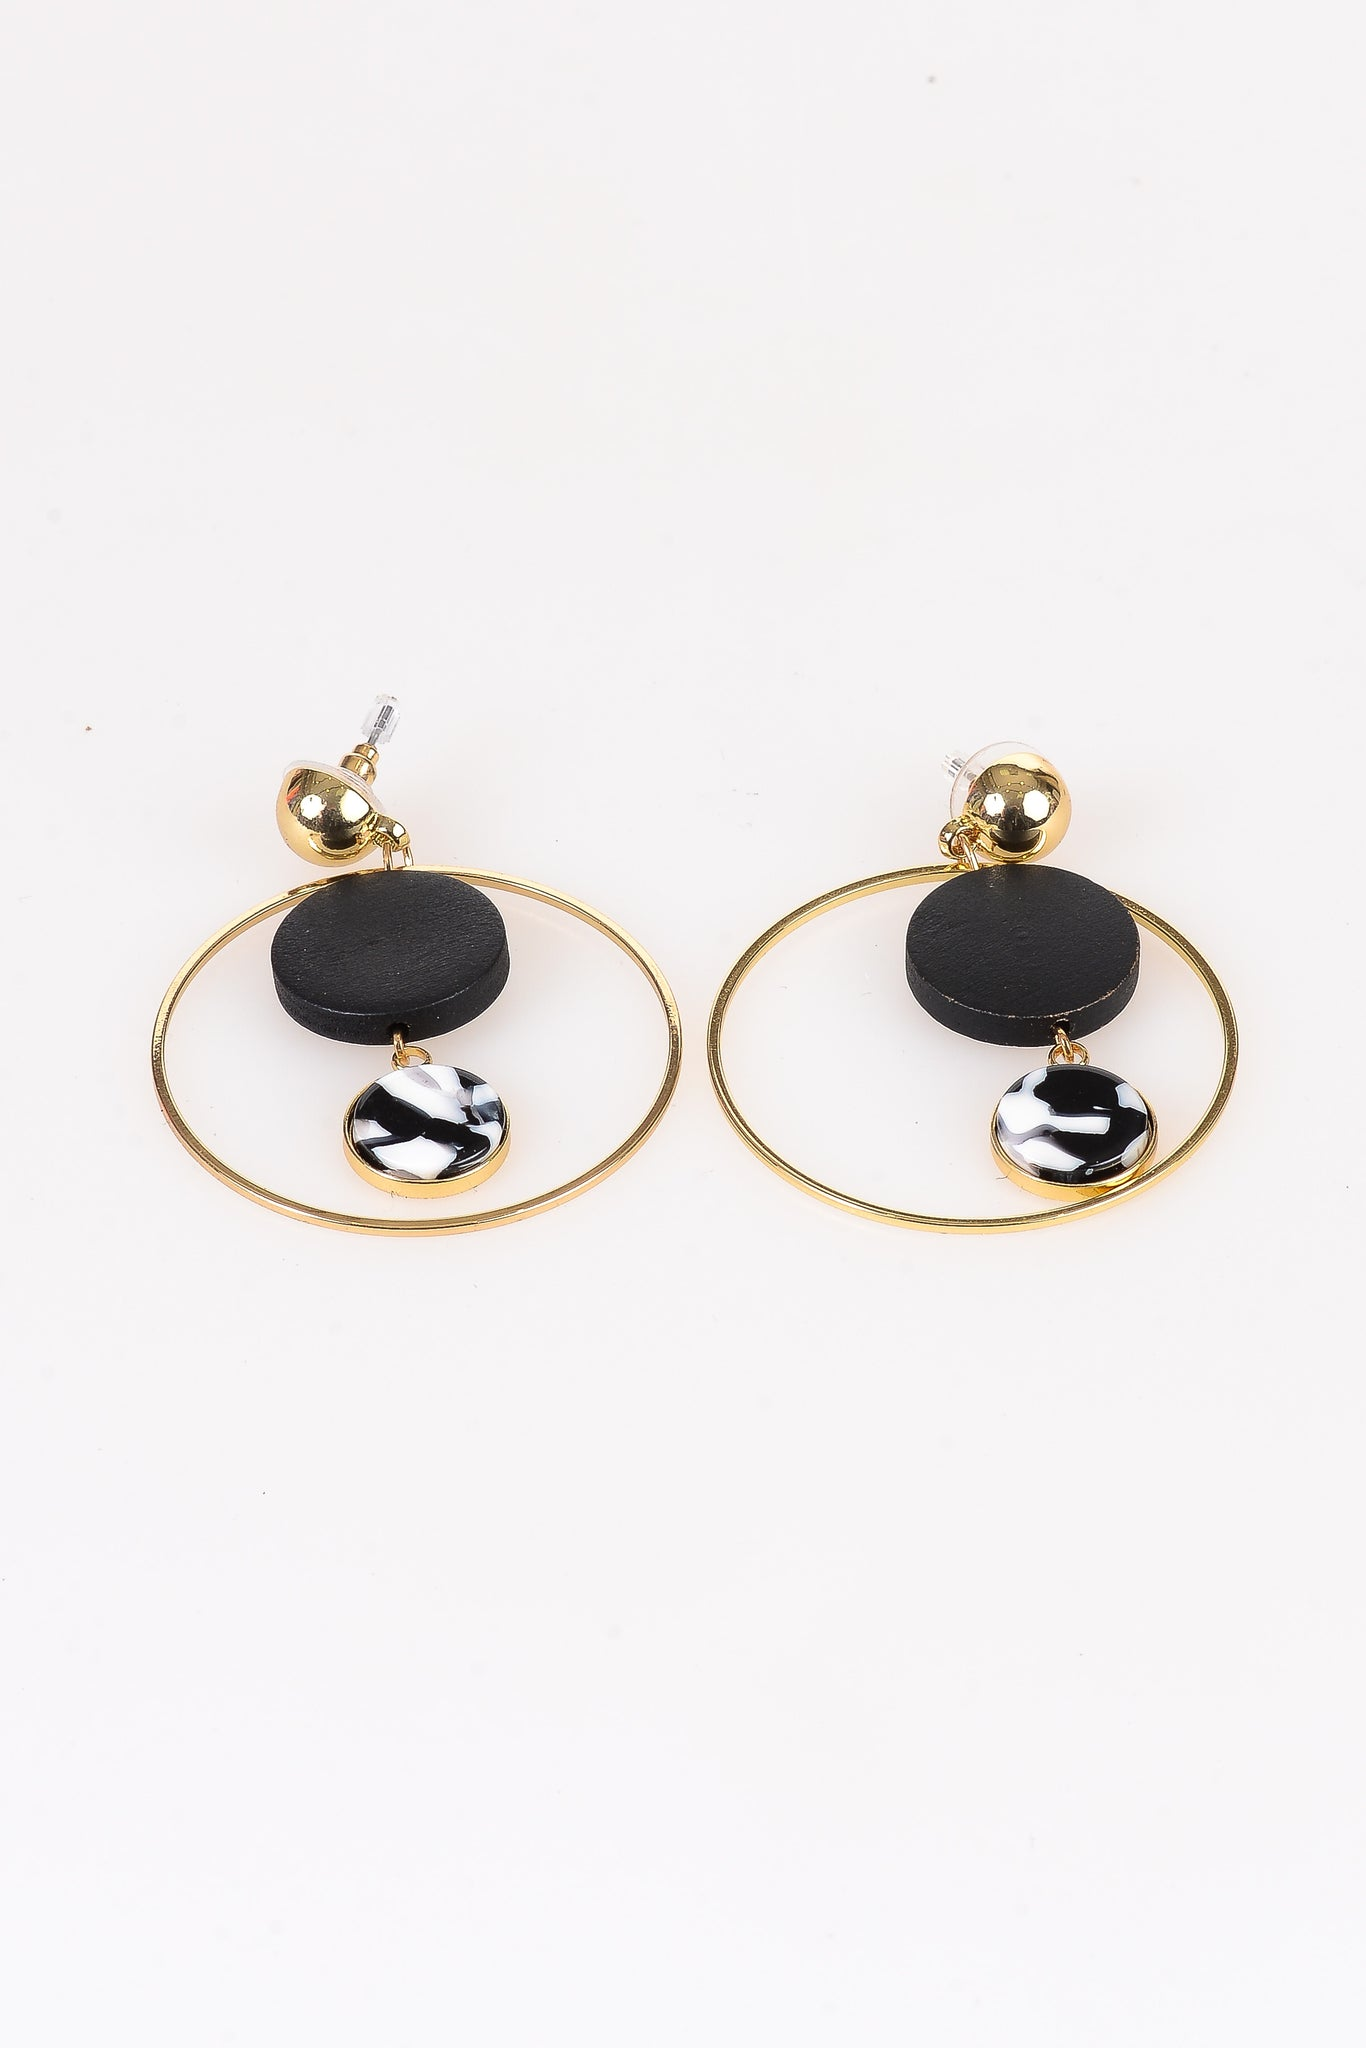 Two-Tone Pendant Earrings - Tom & Eva